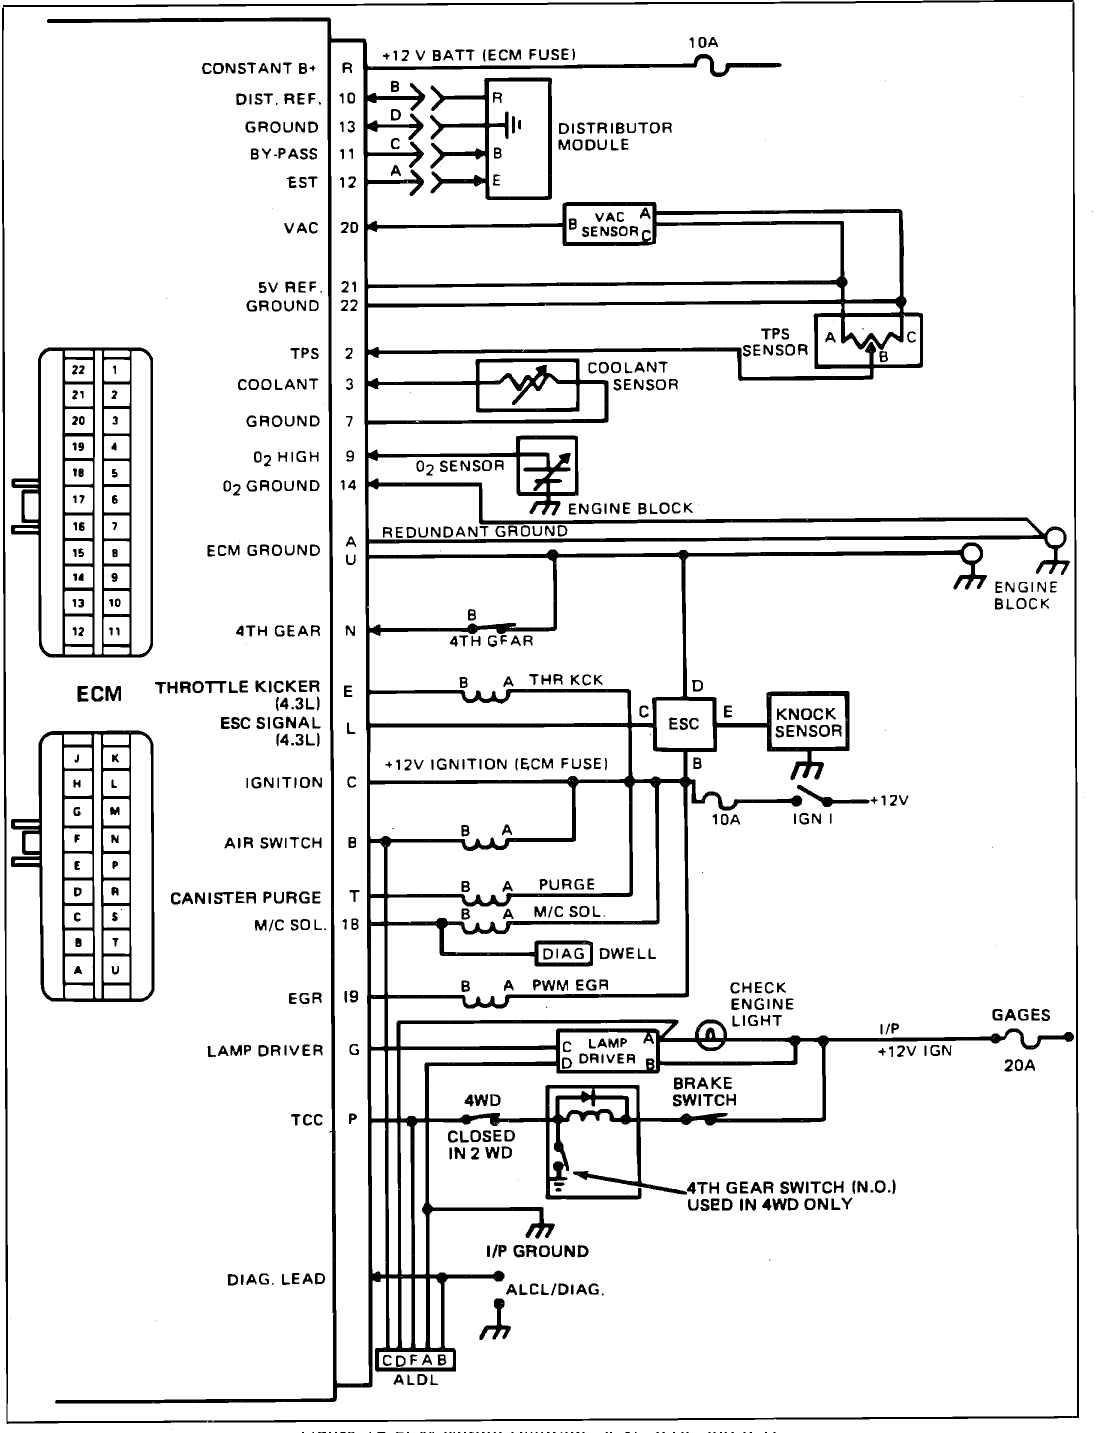 Chevy G30 Fuse Box Auto Electrical Wiring Diagram 1991 Oldsmobile 98